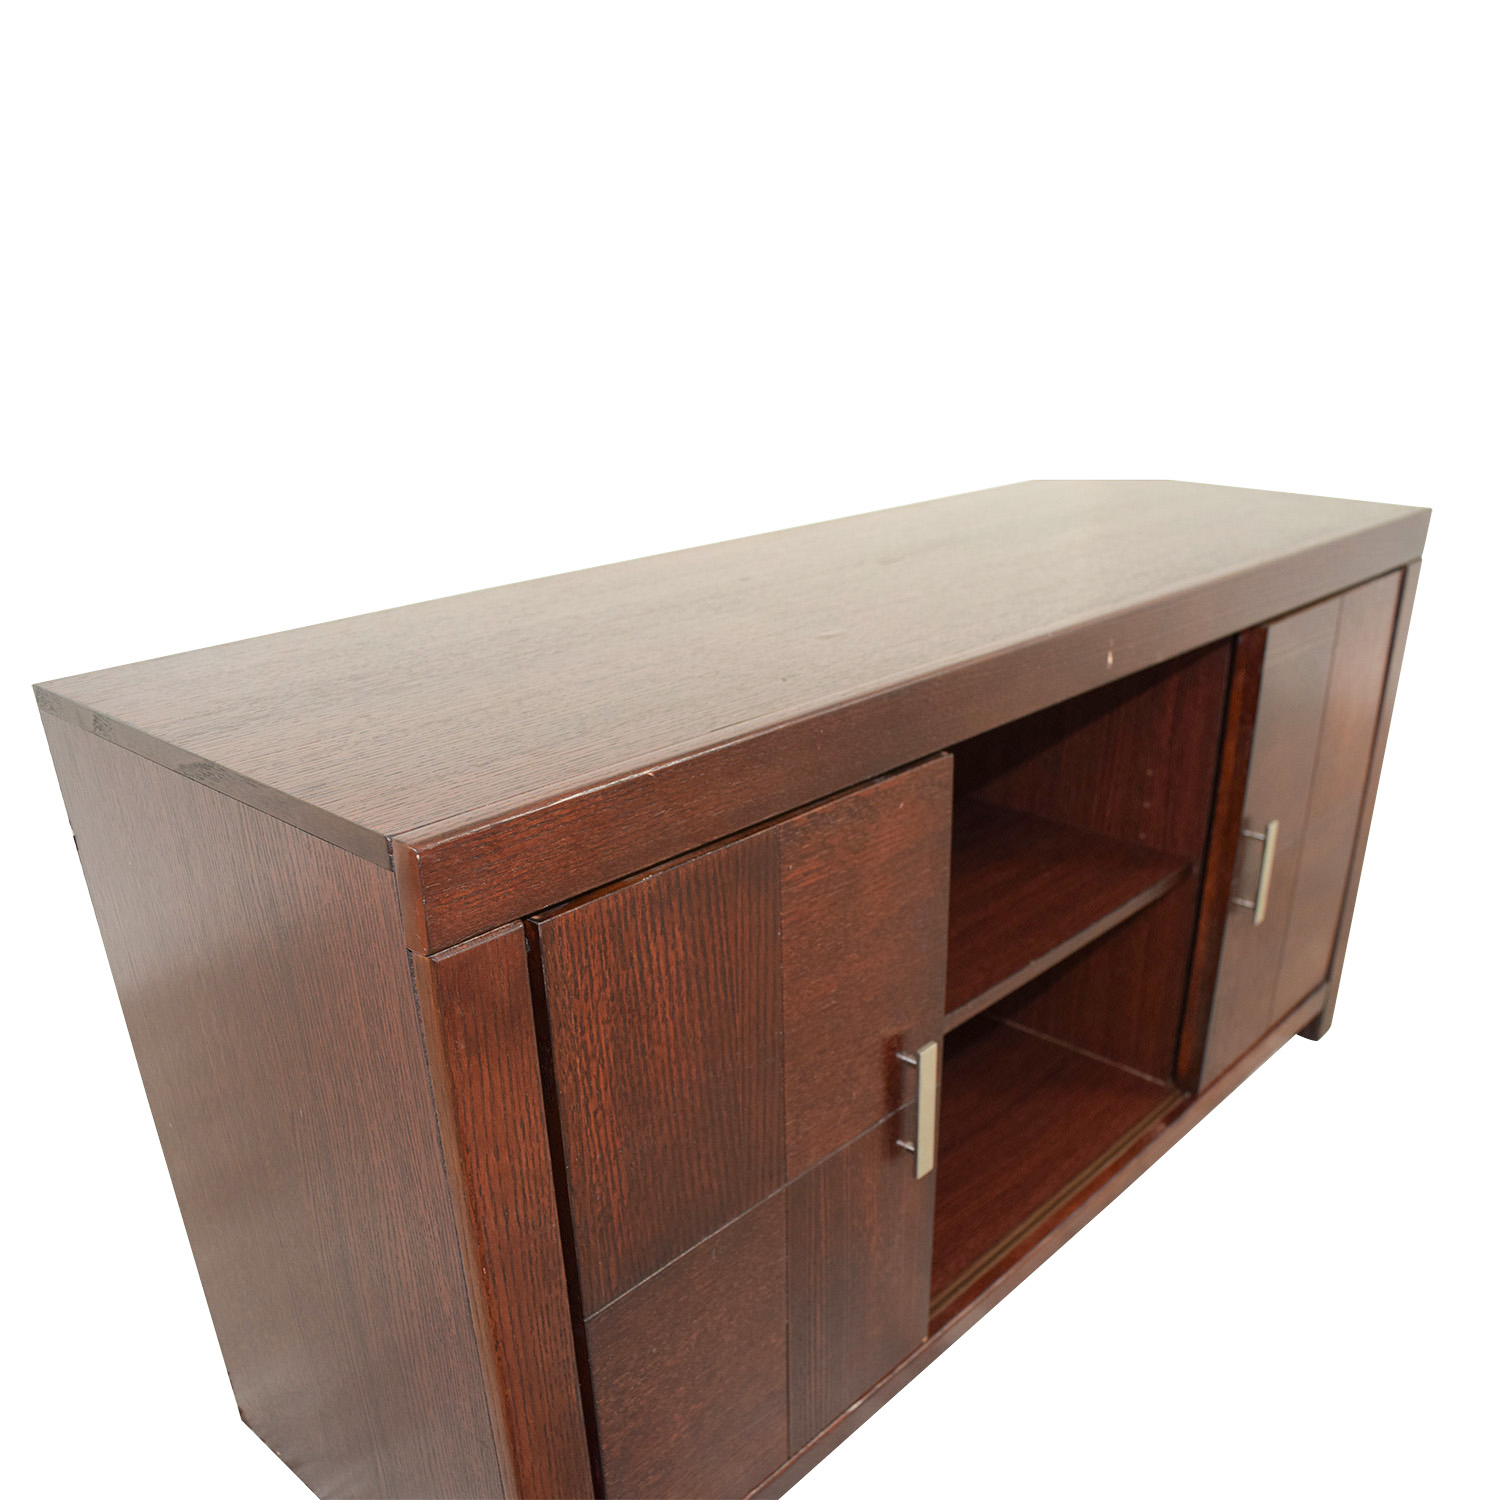 shop Rooms To Go Rooms To Go TV Stand online